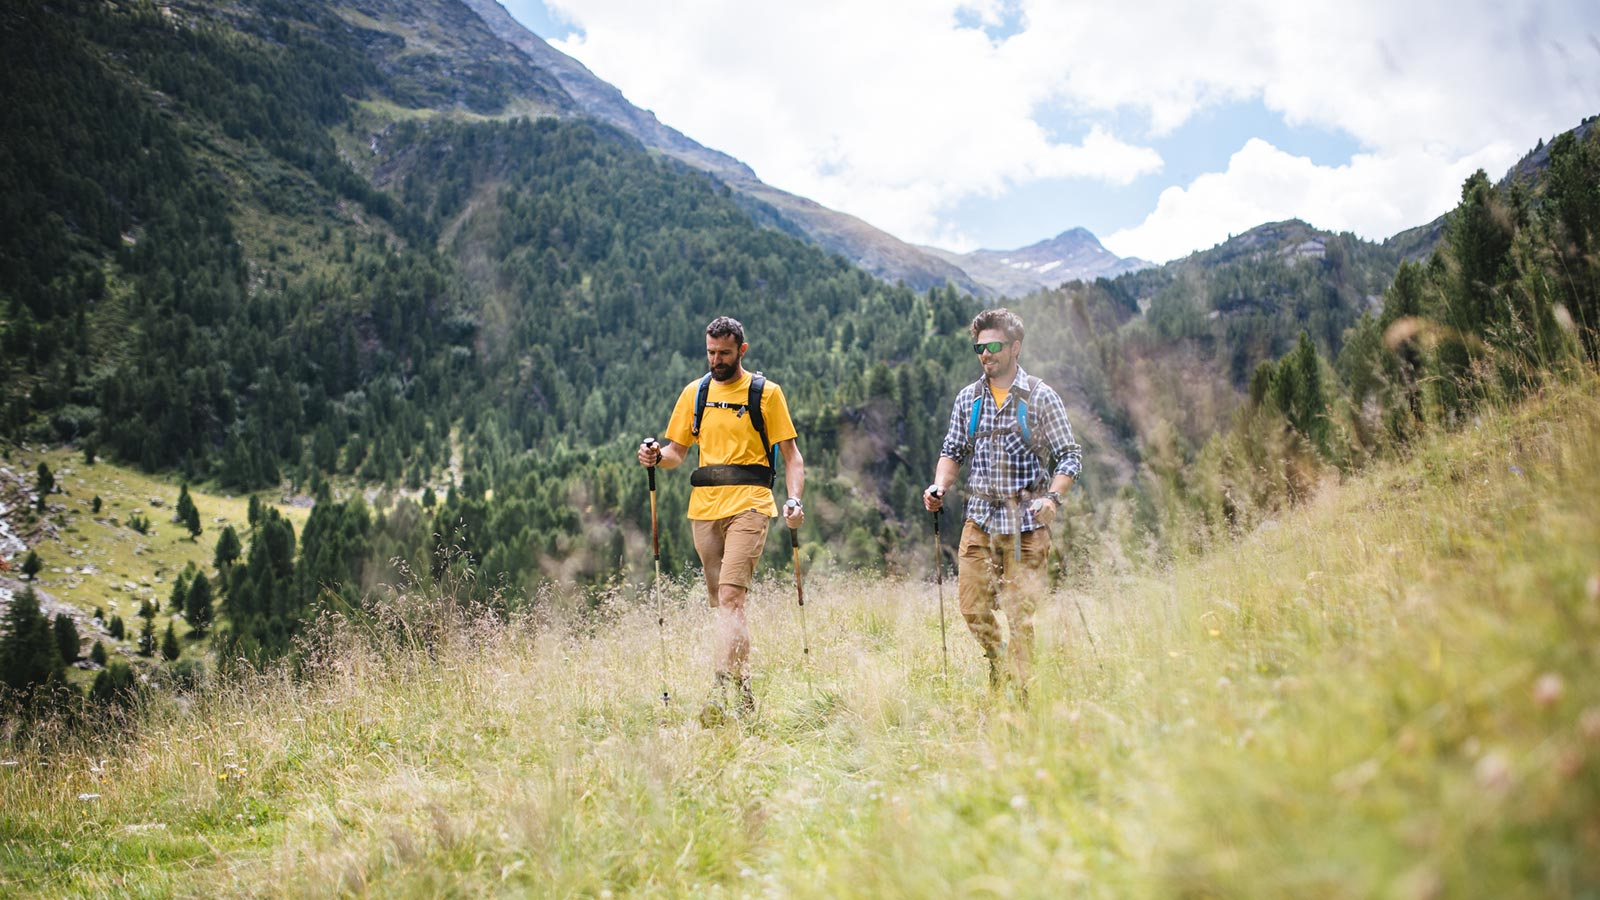 Two boys on a hike in nature at Santa Caterina Valfurva